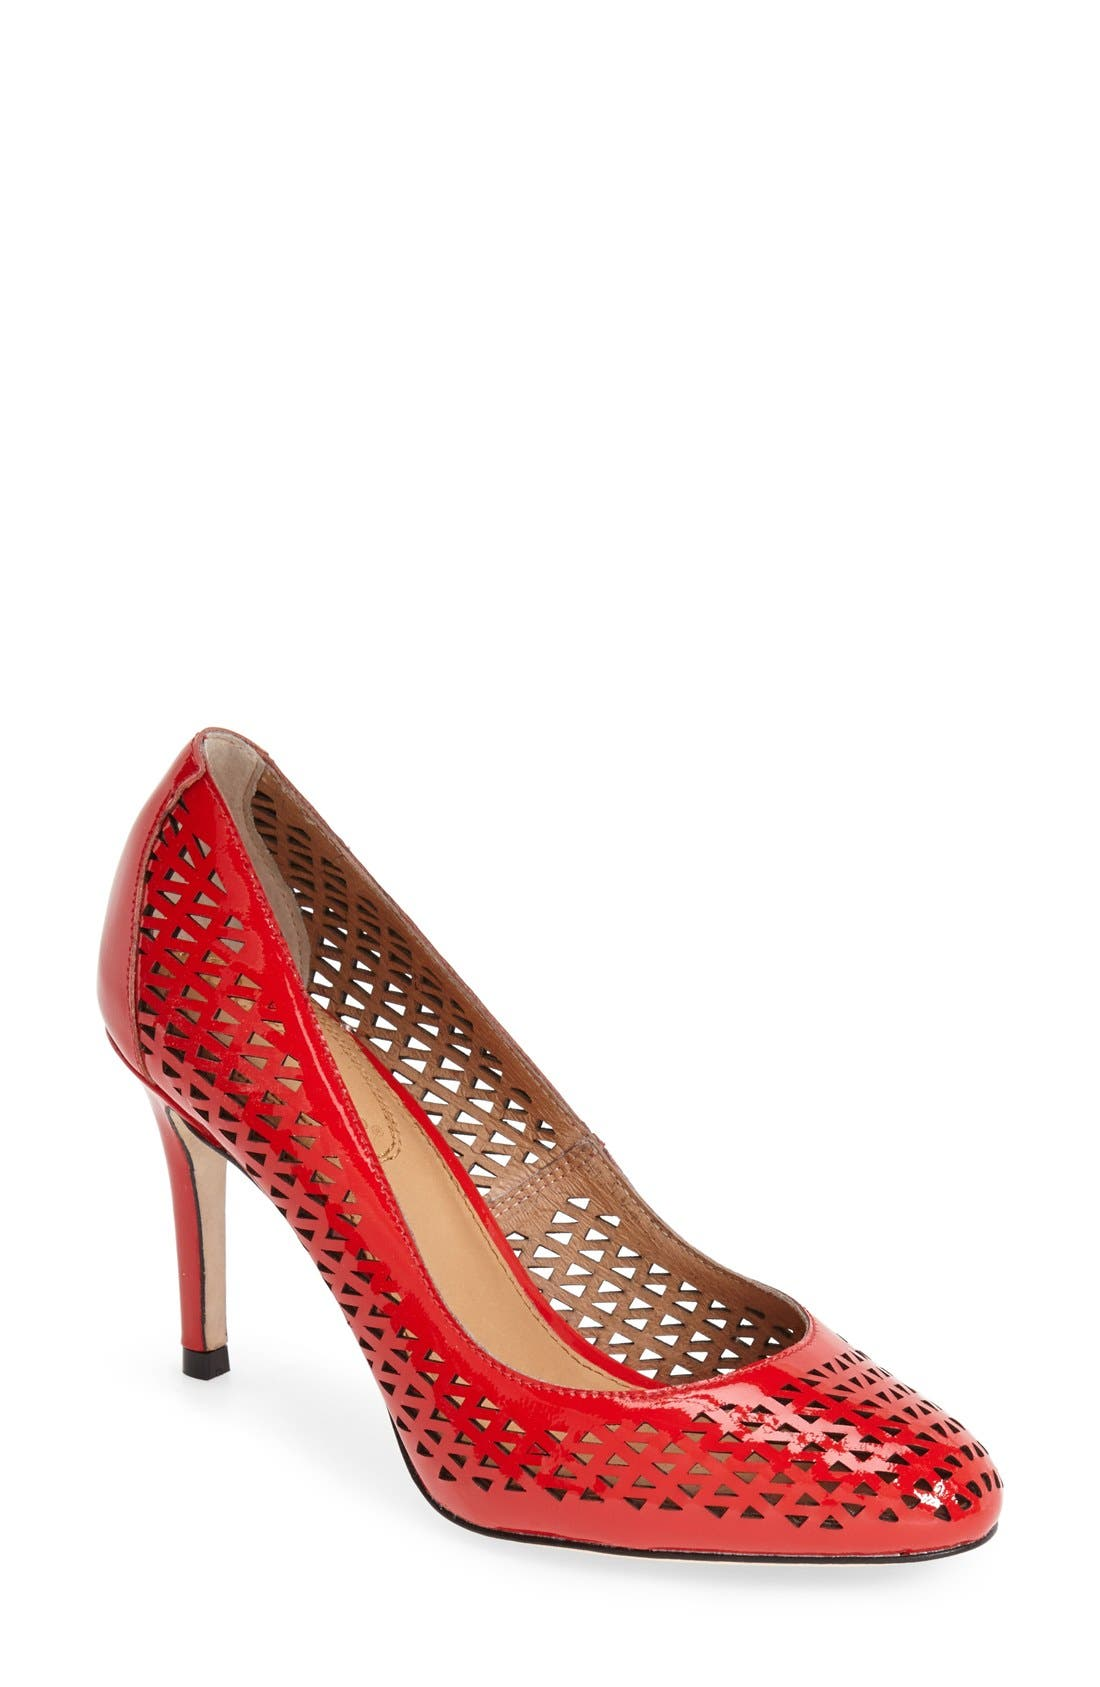 Alternate Image 1 Selected - Corso Como 'Wanda' Perforated Leather Pump (Women)